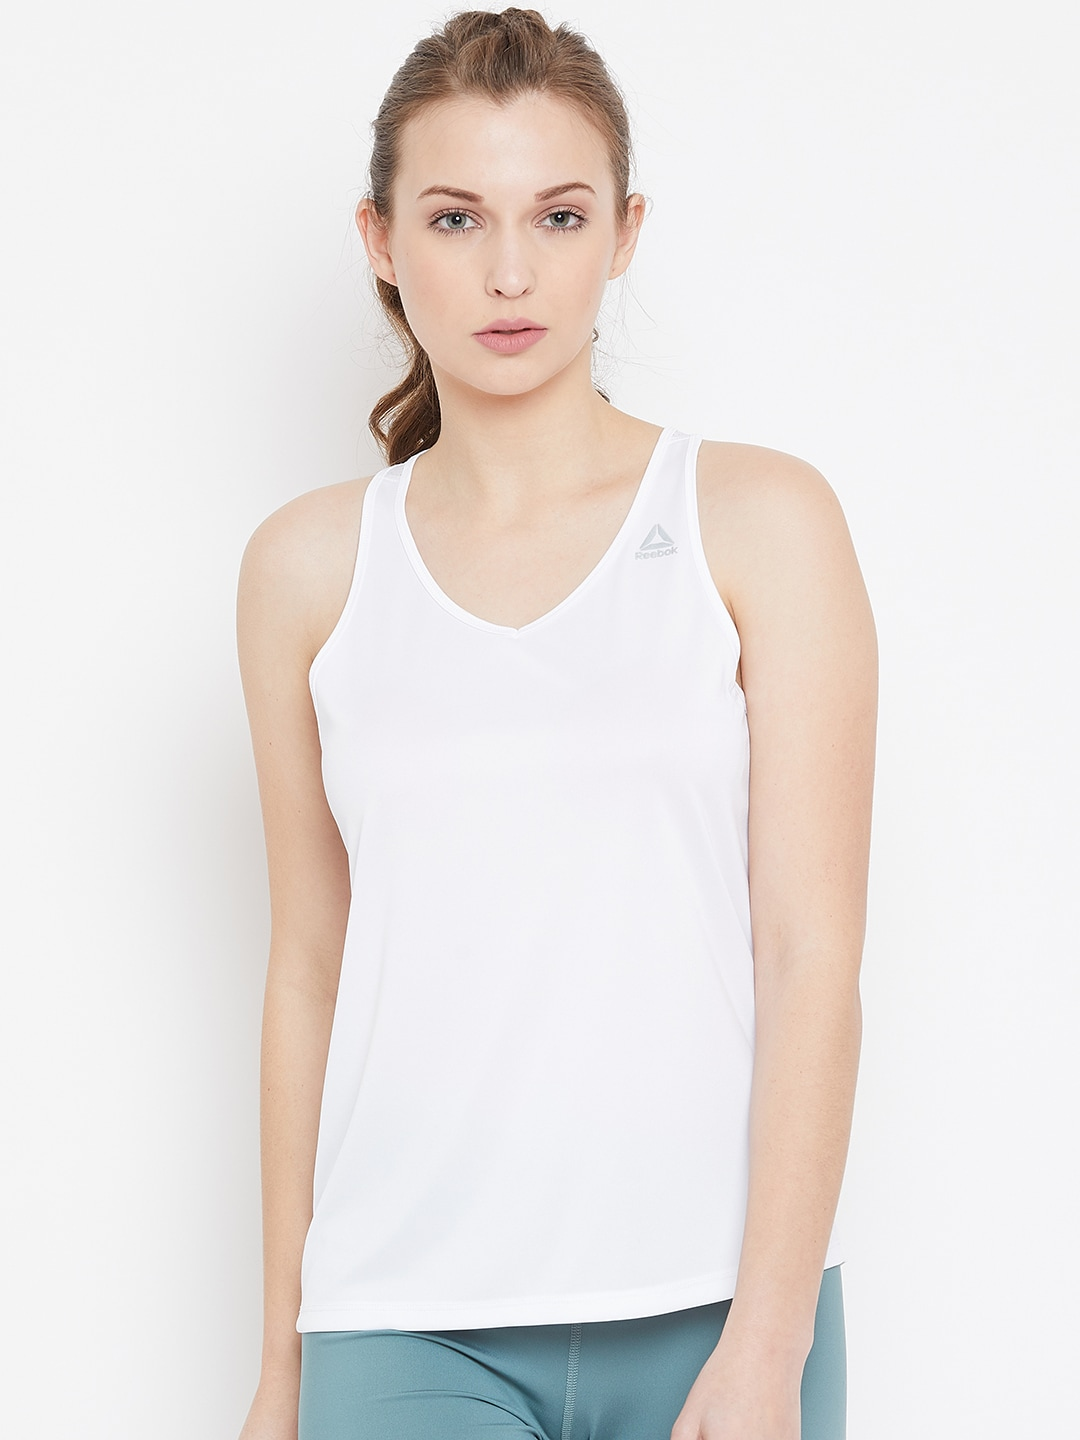 61a62c00 Reebok Women White Solid Tank Top